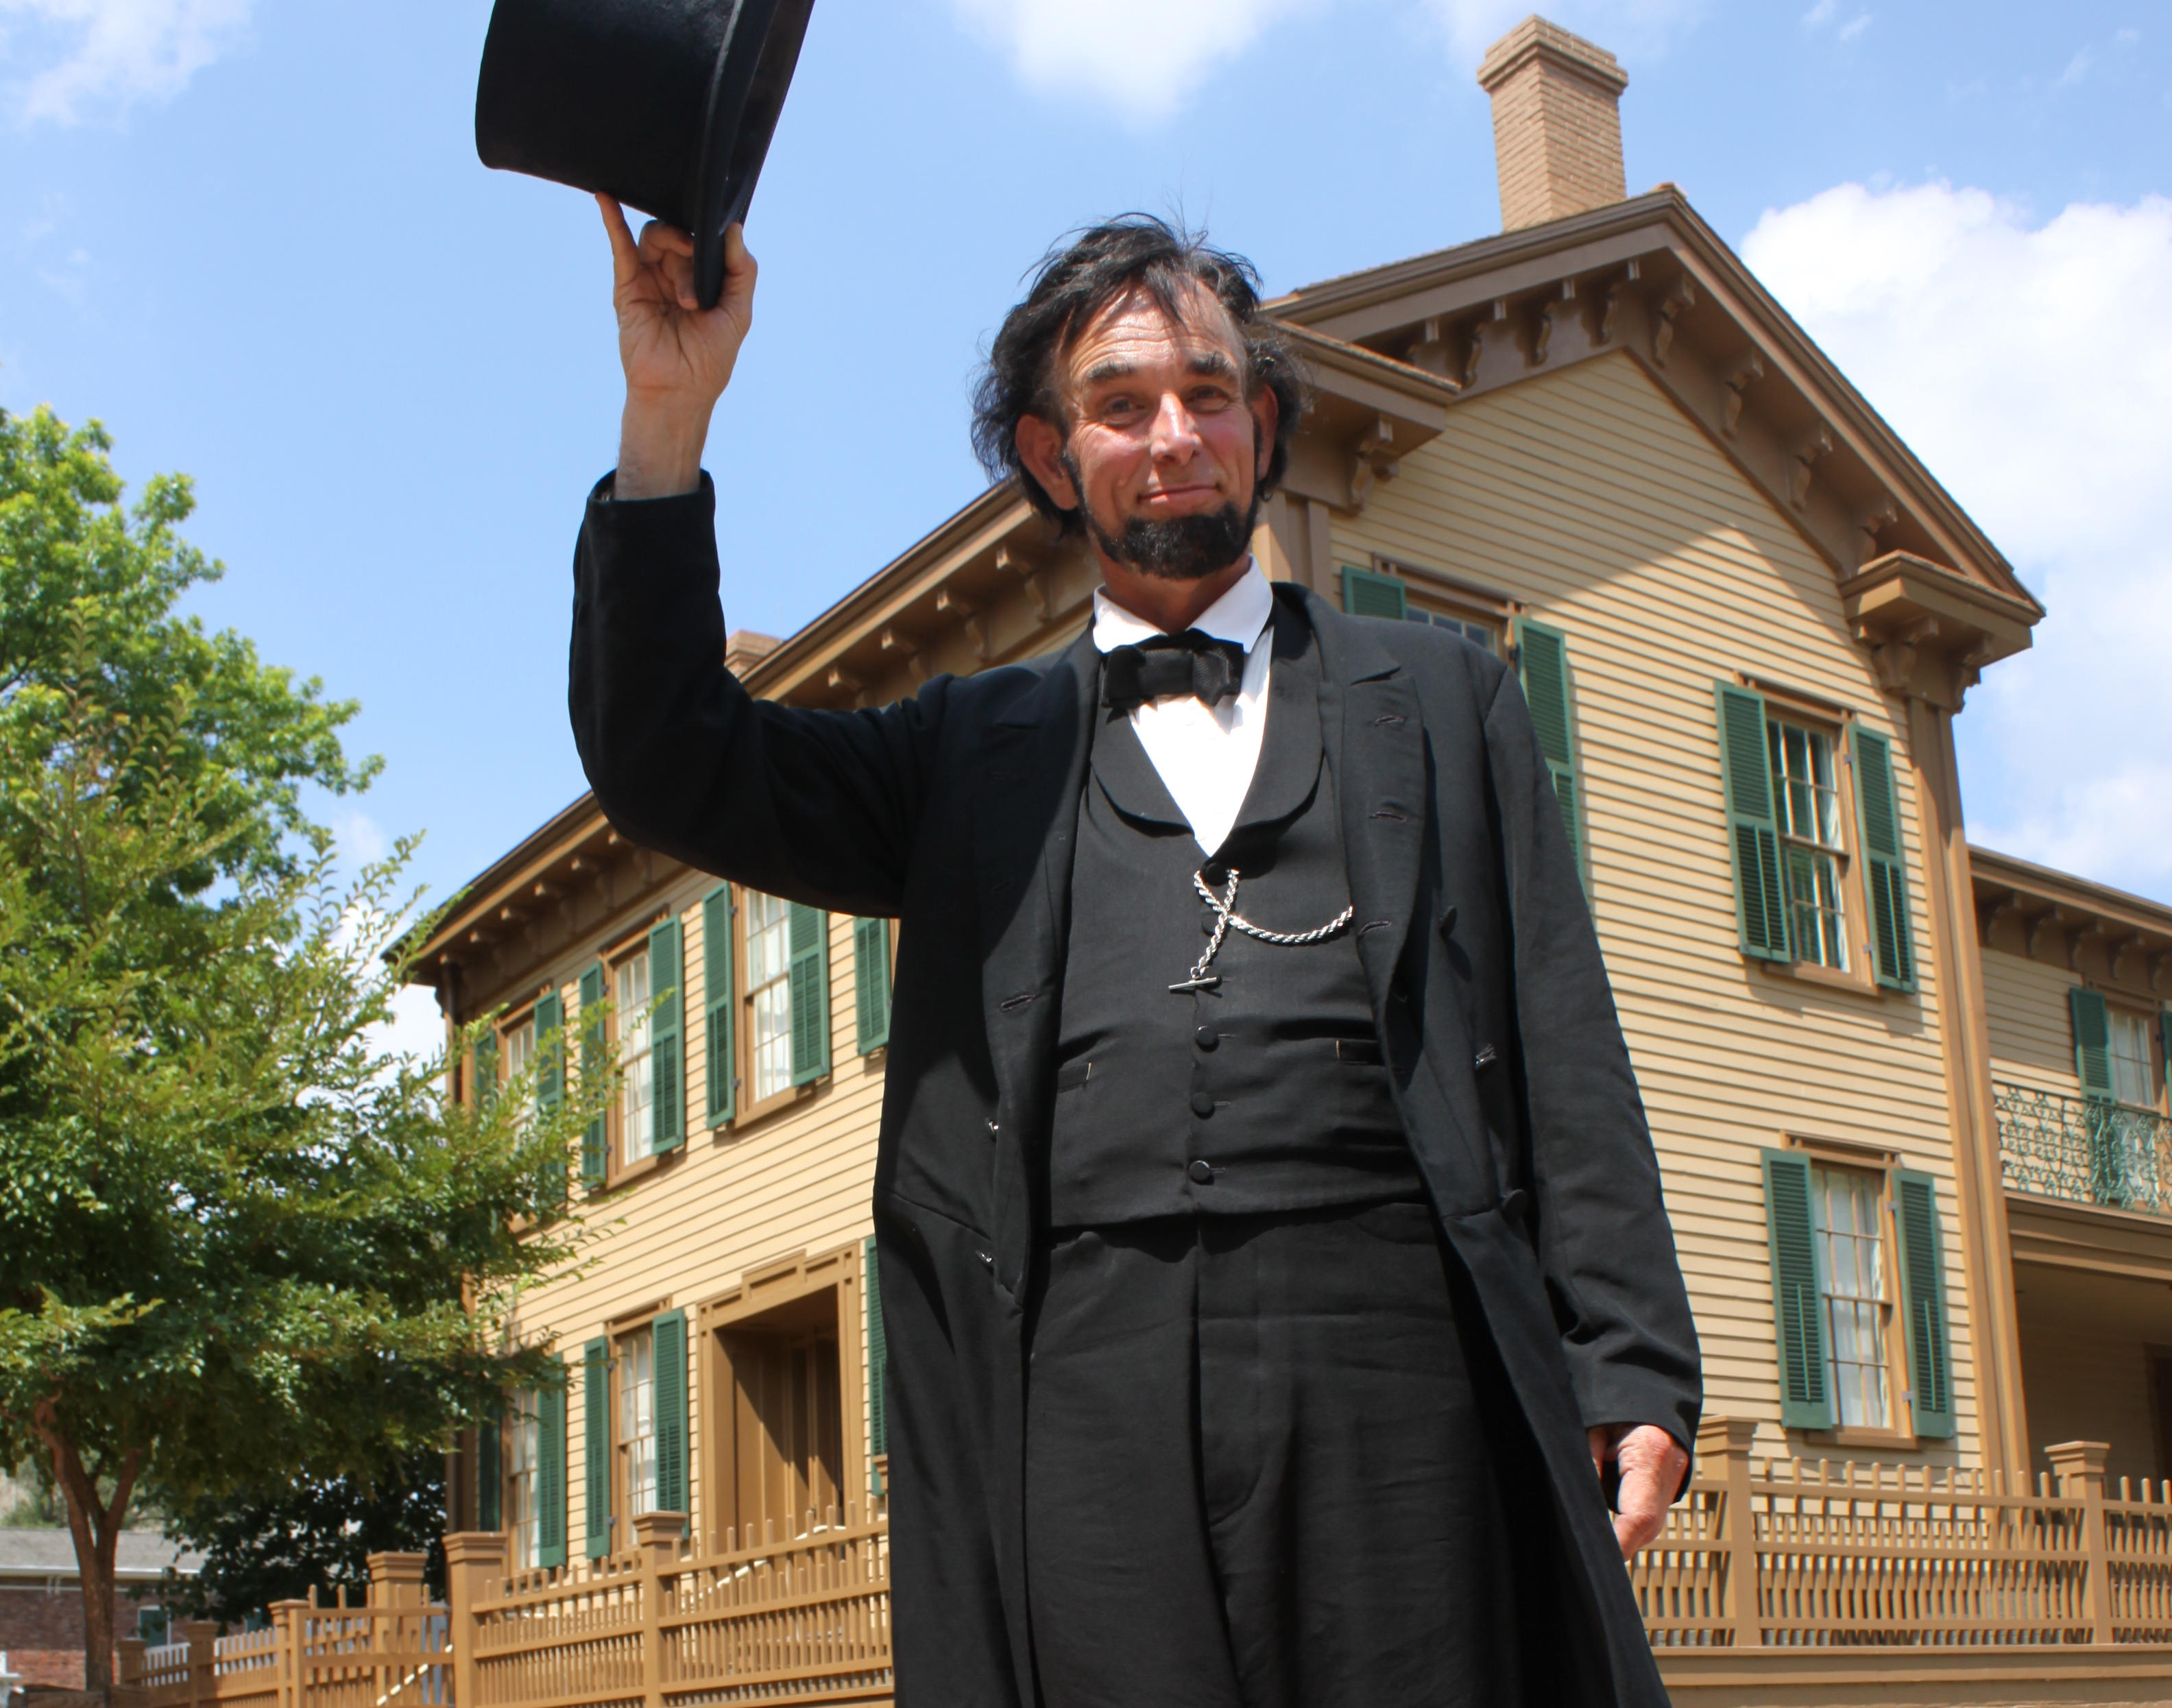 Actor portraying Abraham Lincoln in front of home